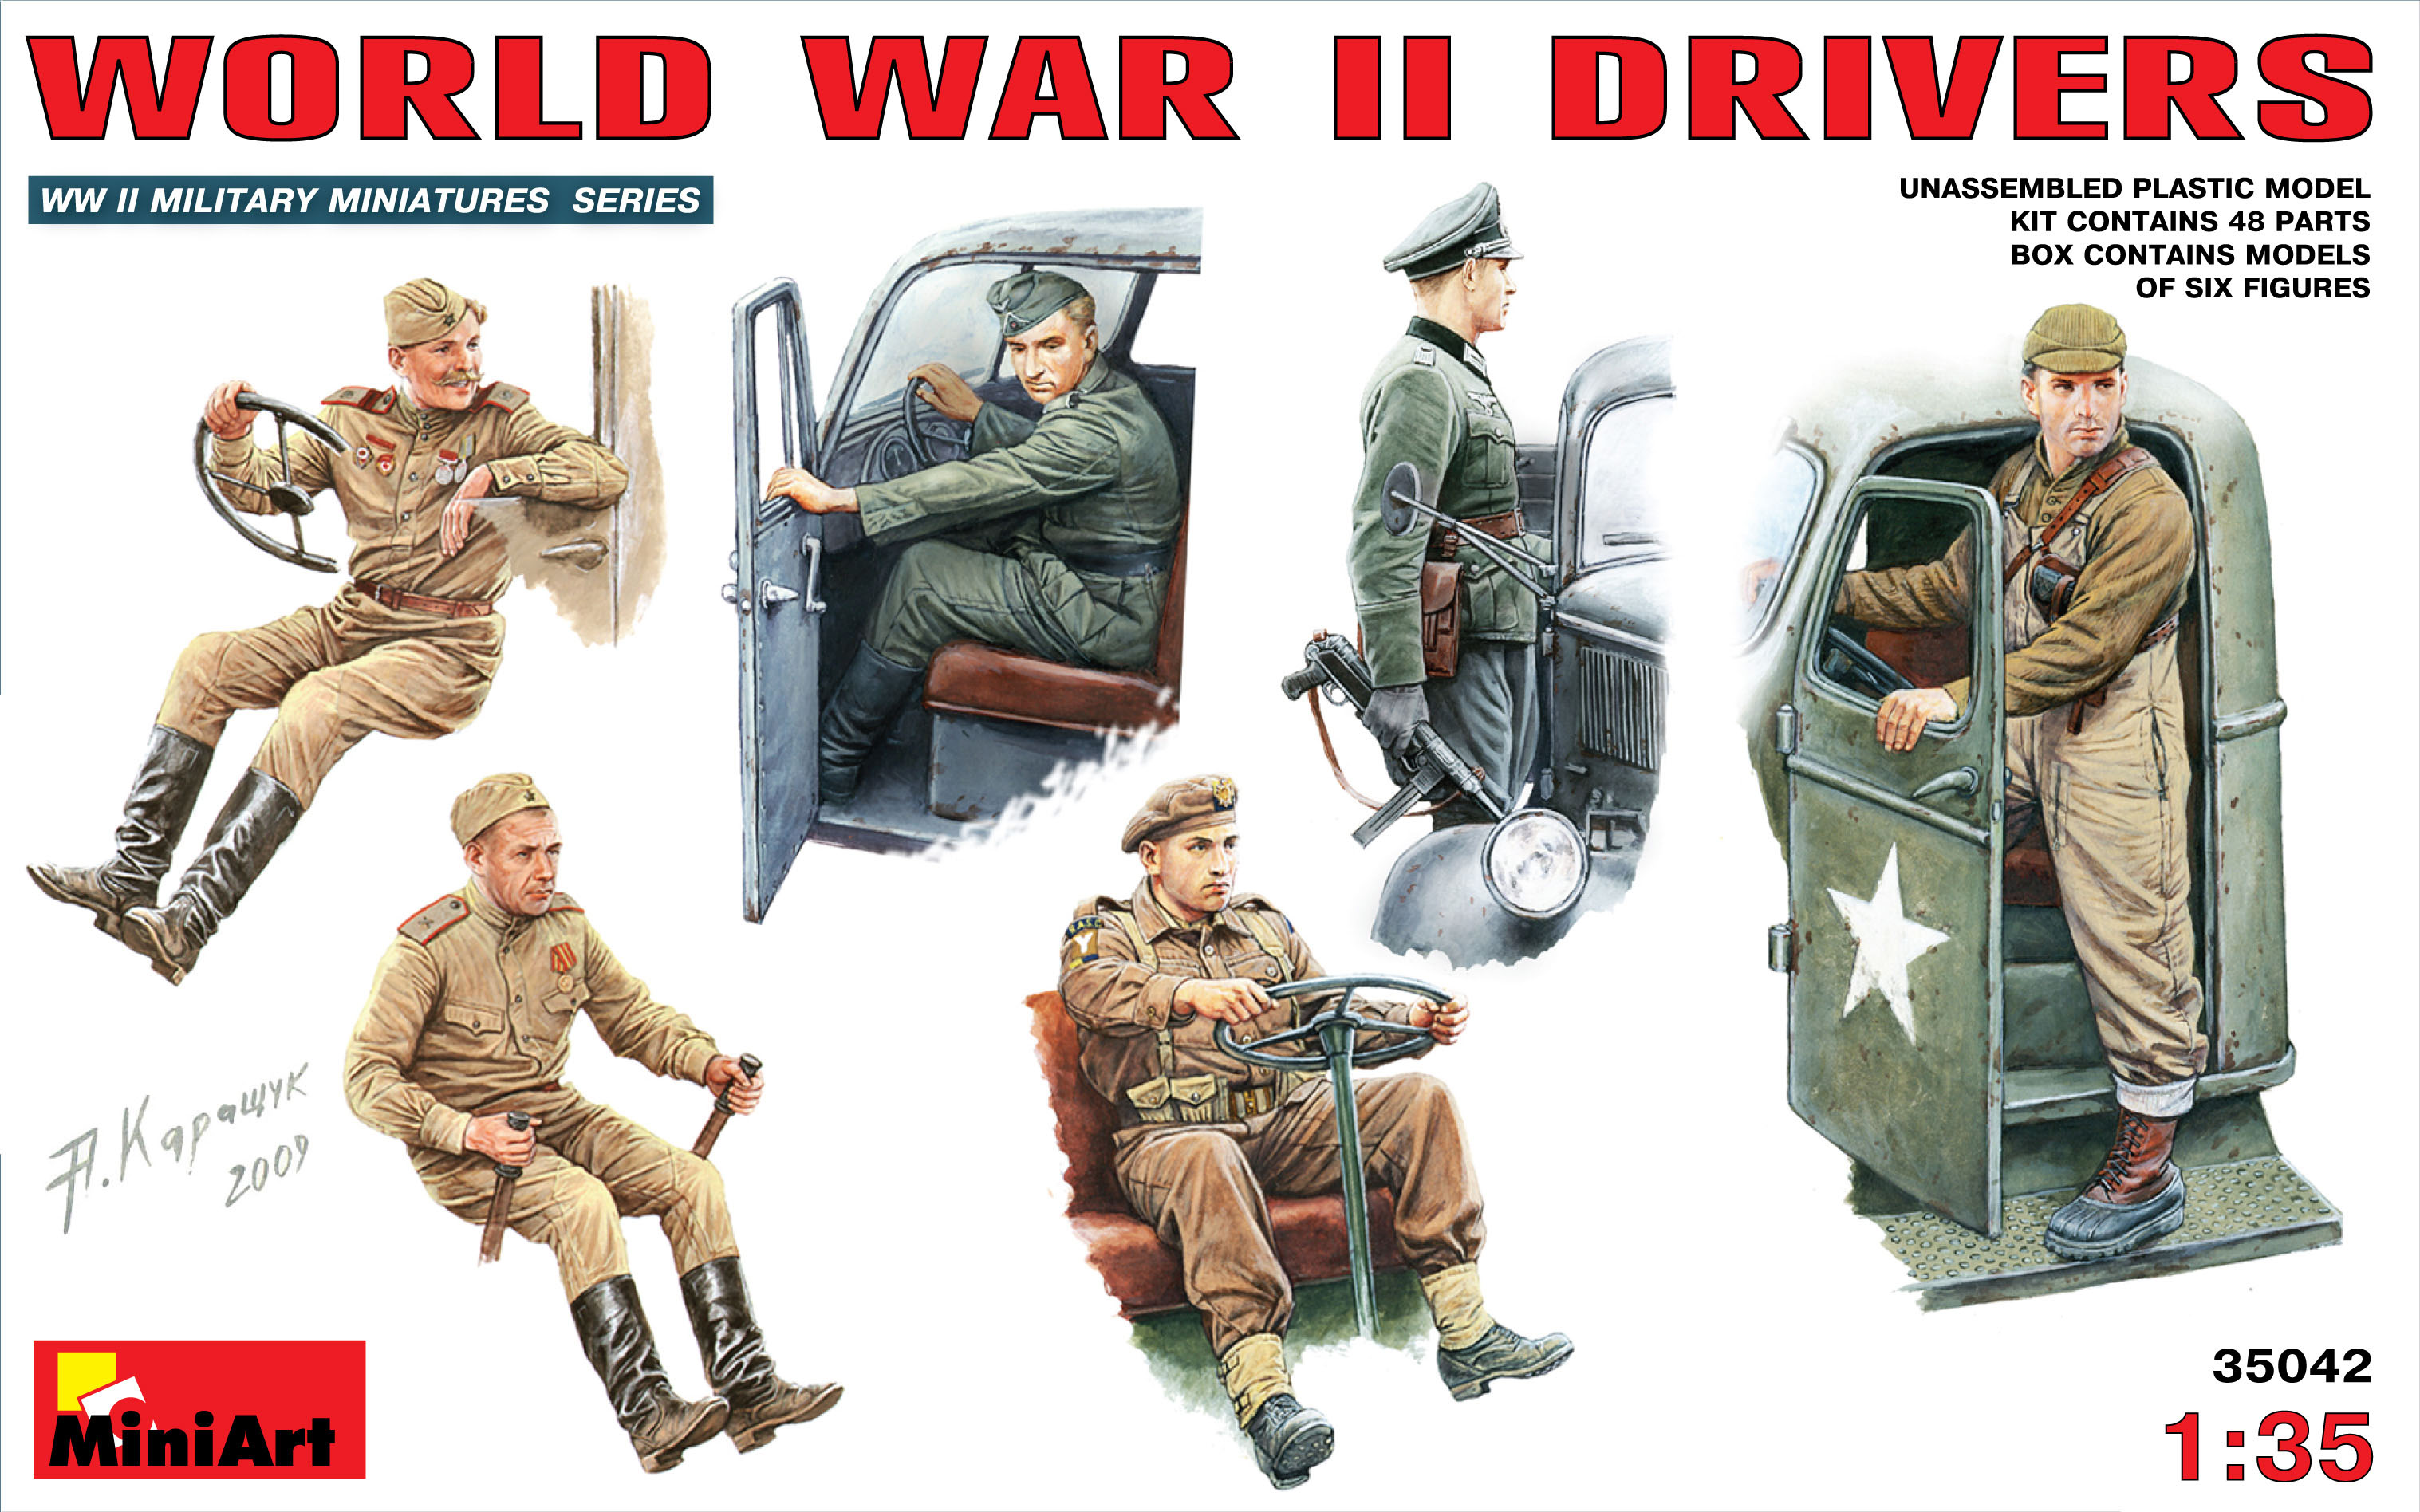 35042 WORLD WAR II DRIVERS